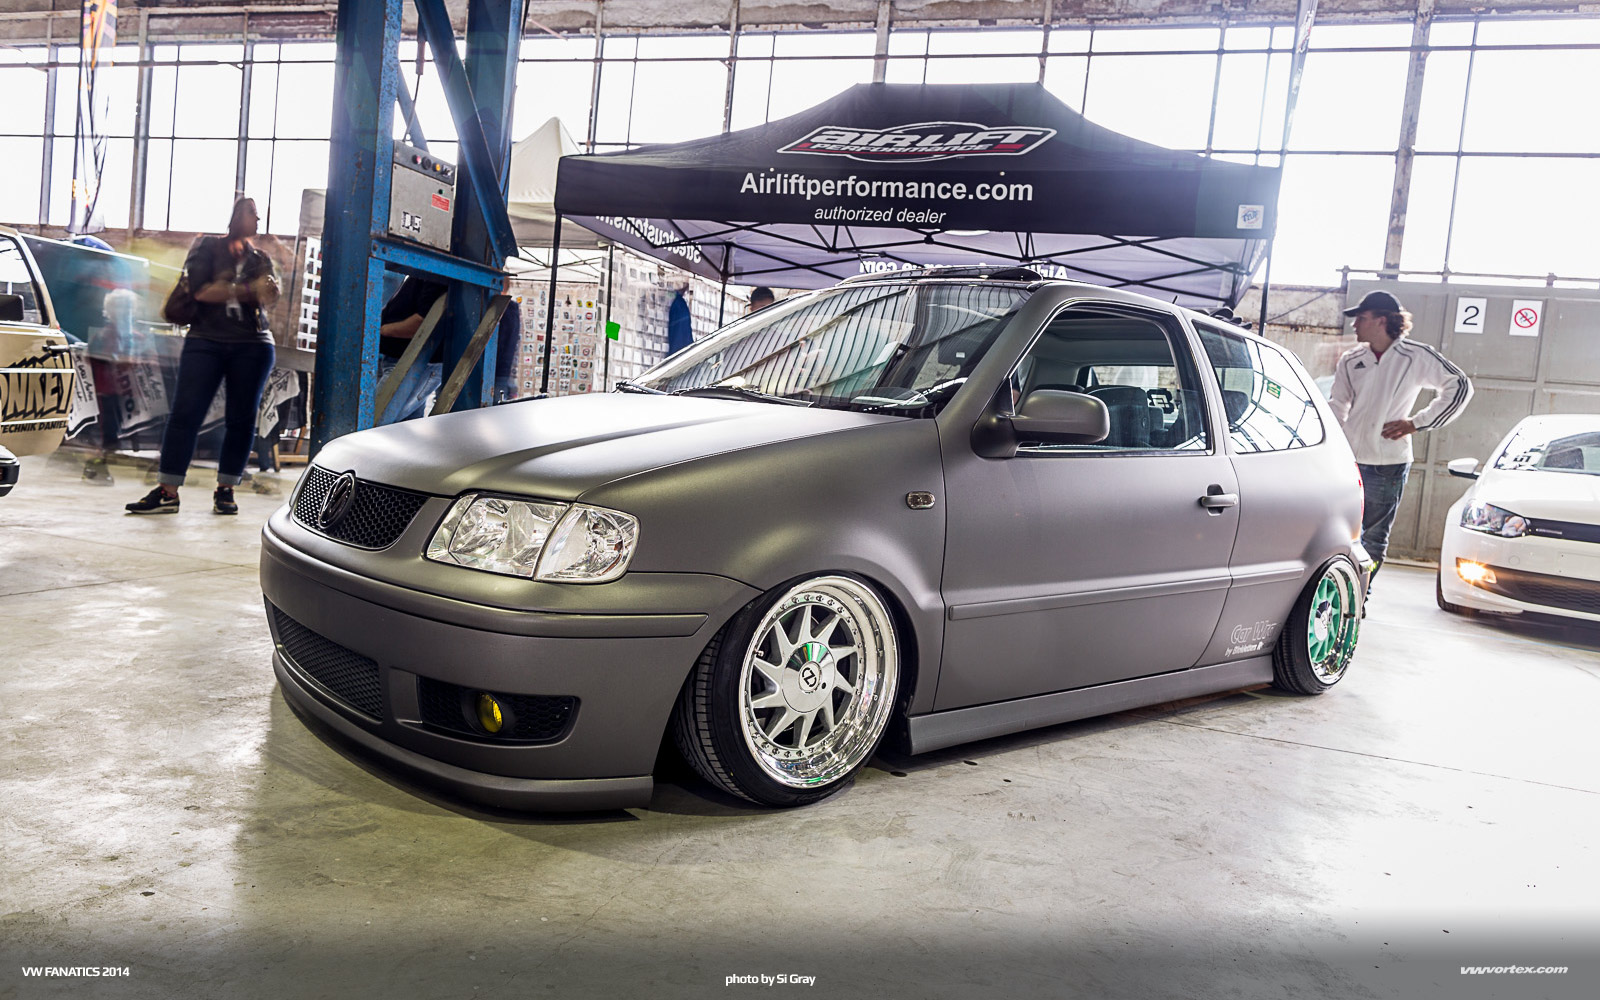 VWFanatics-2014-Si-Gray-425